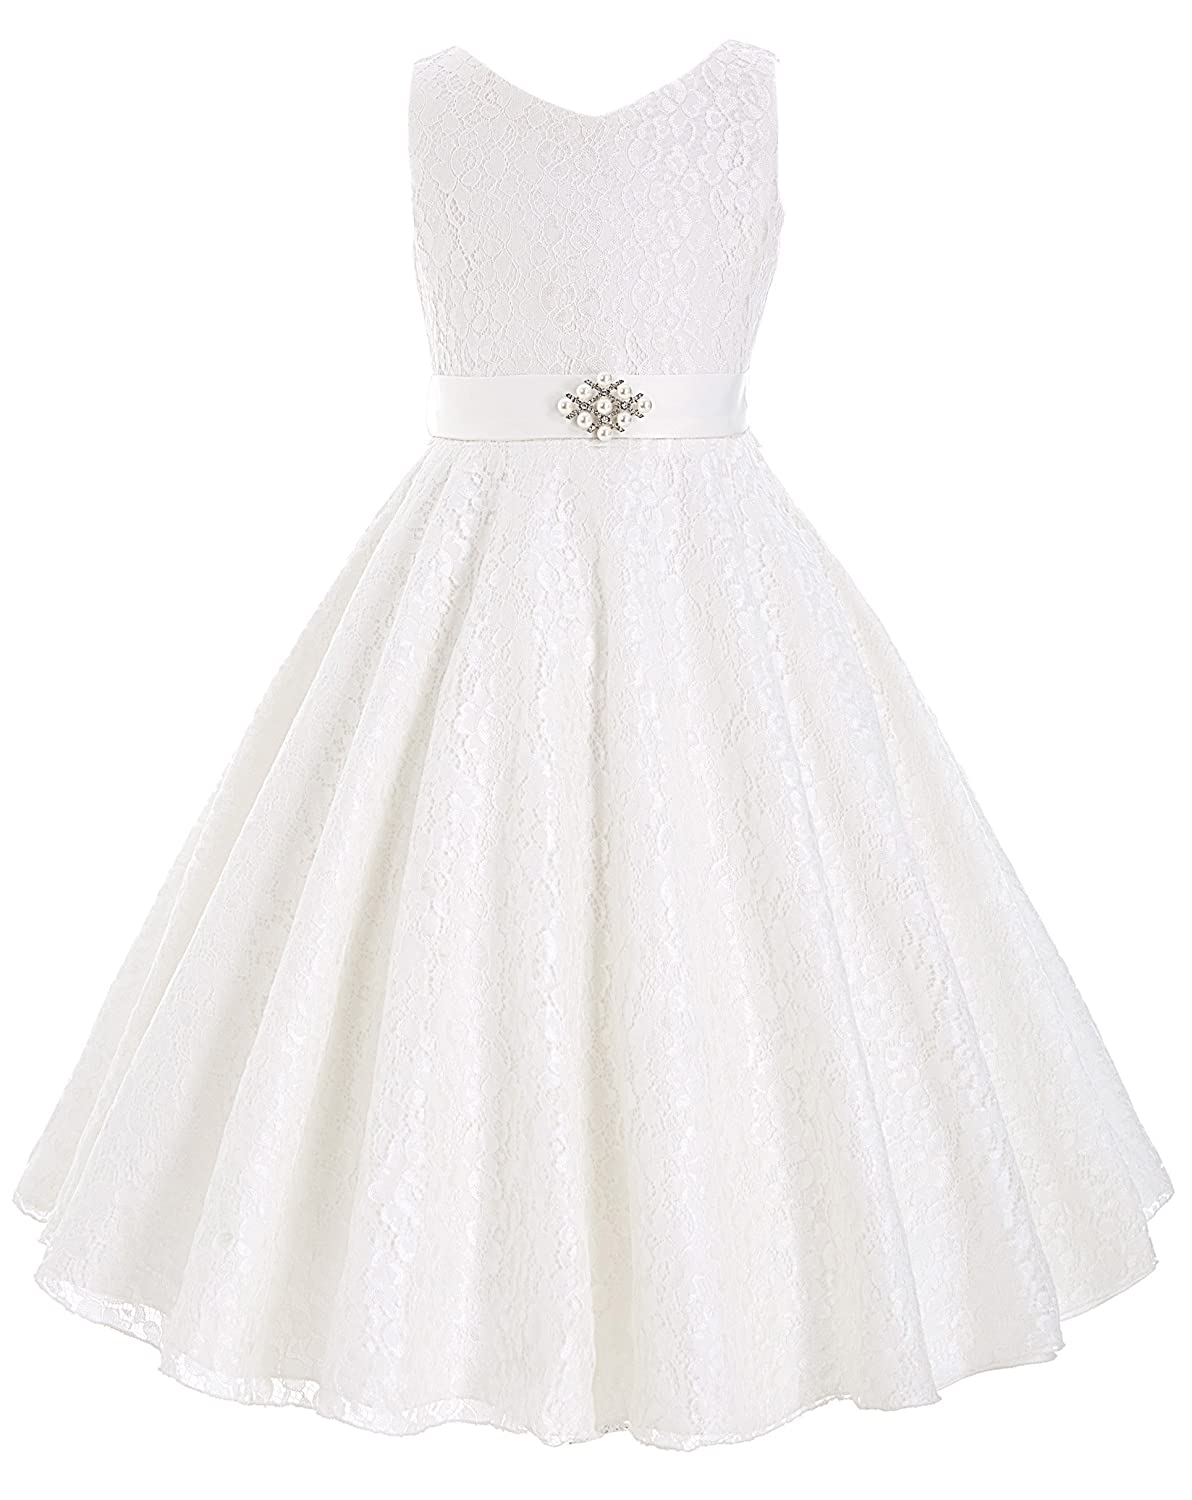 Kids 1950s Clothing & Costumes: Girls, Boys, Toddlers GRACE KARIN Lace Flower Girl Dress V Neck Girls Pageant Wedding Party Ball Gown $34.29 AT vintagedancer.com